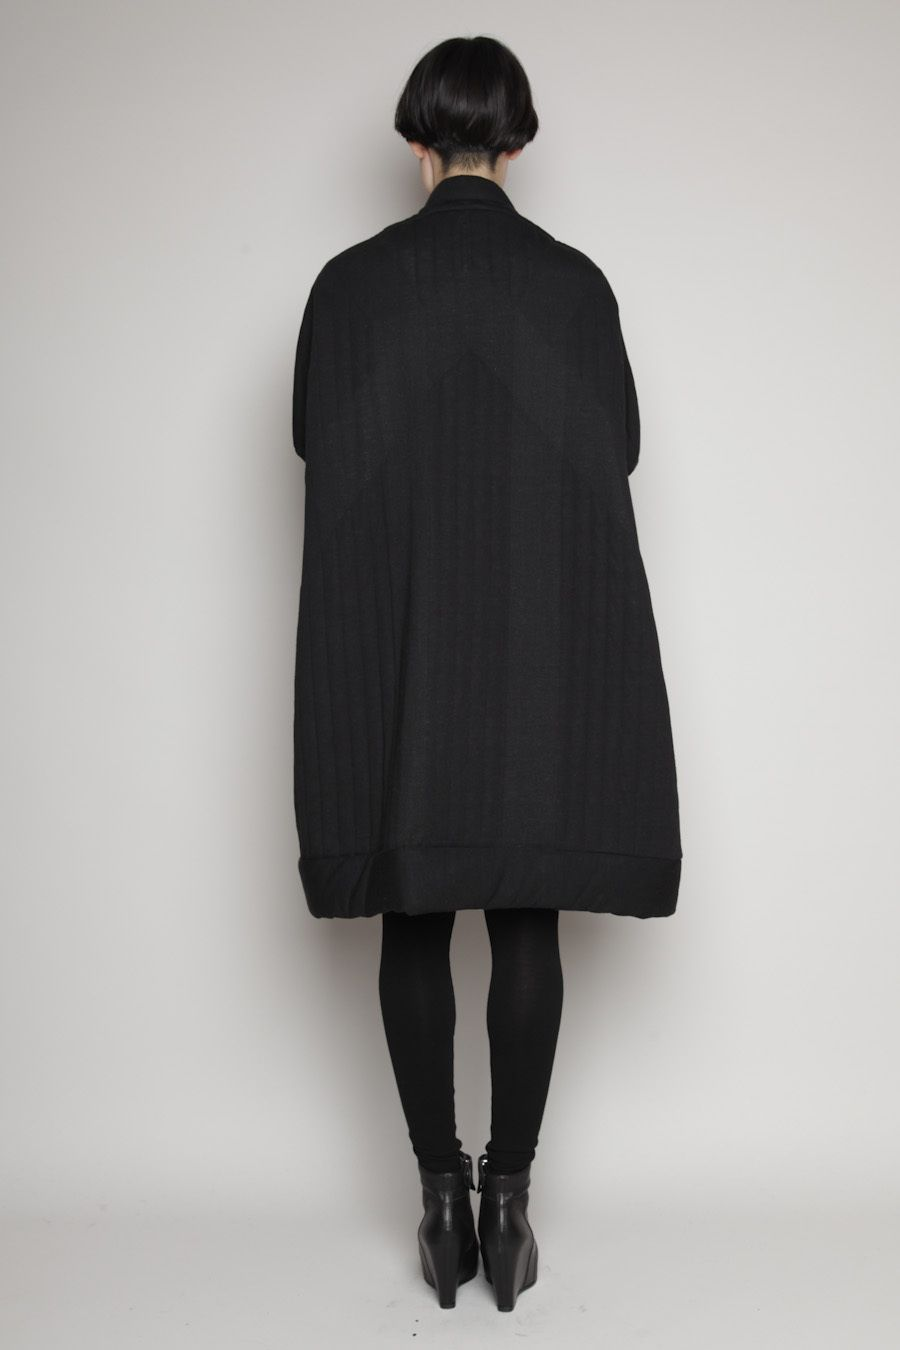 Totokaelo - Rick Owens LILIES Black Quilted Sail Coat